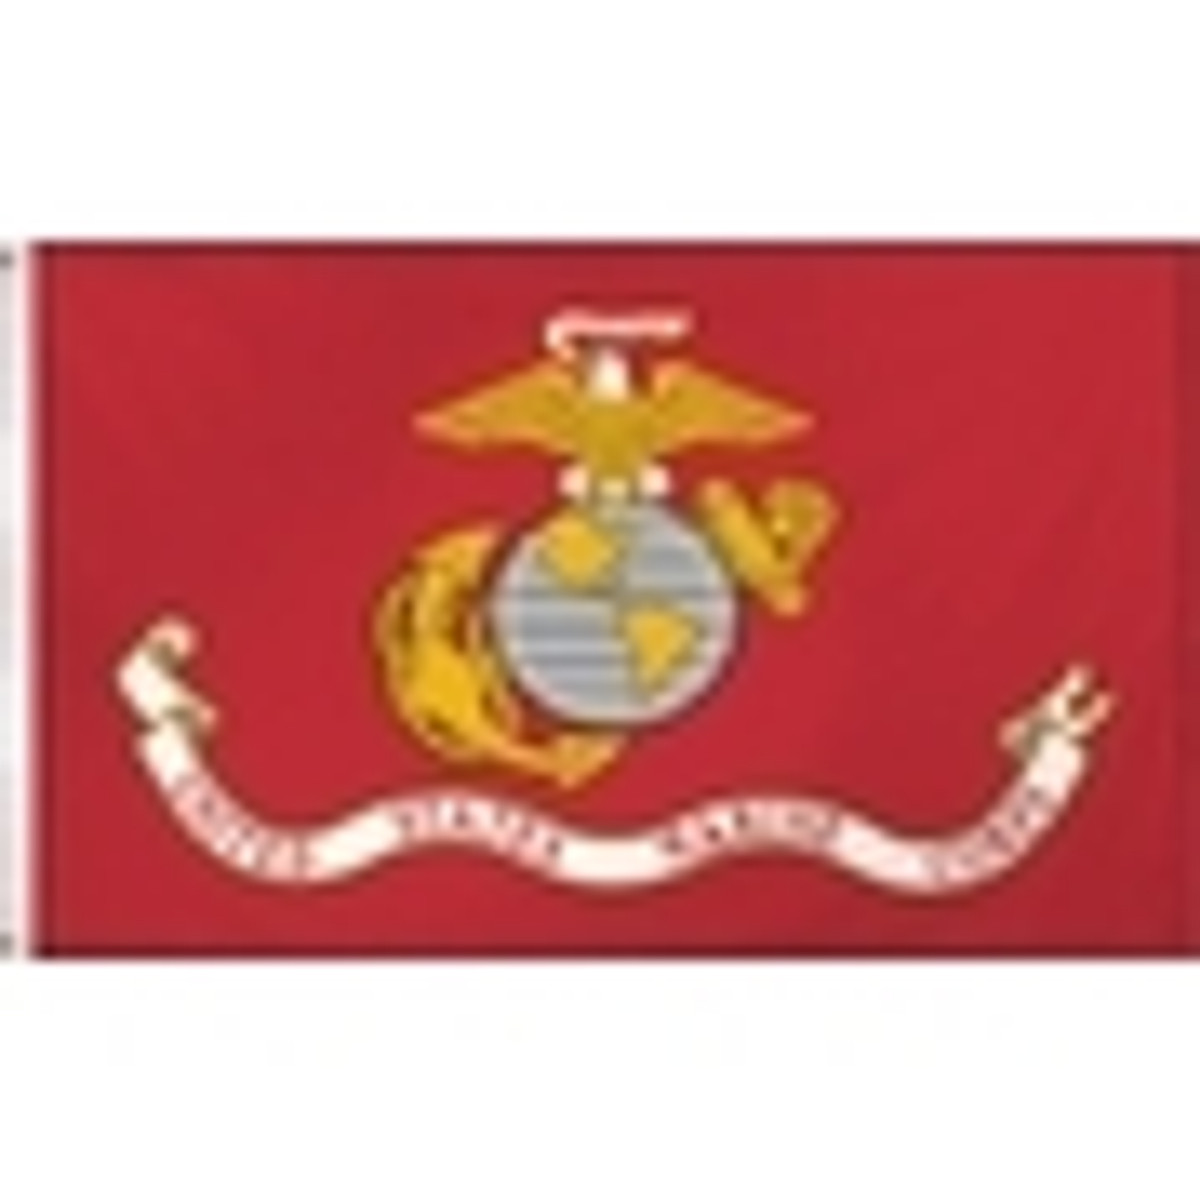 US Marine Flag Lapel Pins, Patches and Decals